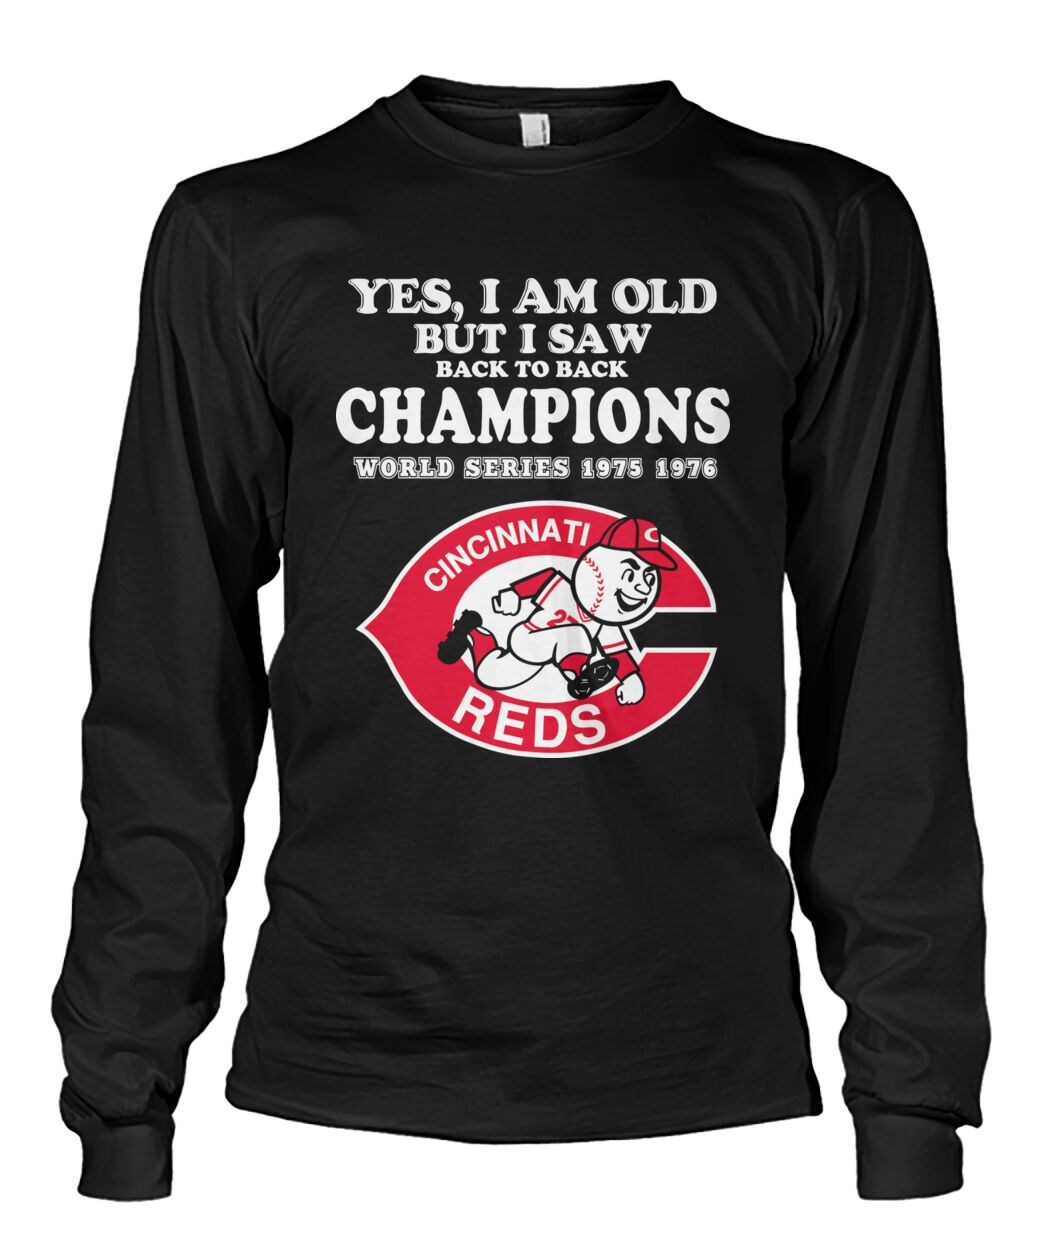 Yes I am old but I saw back to back champions world series 1975 1976 cincinnati reds shirt 13